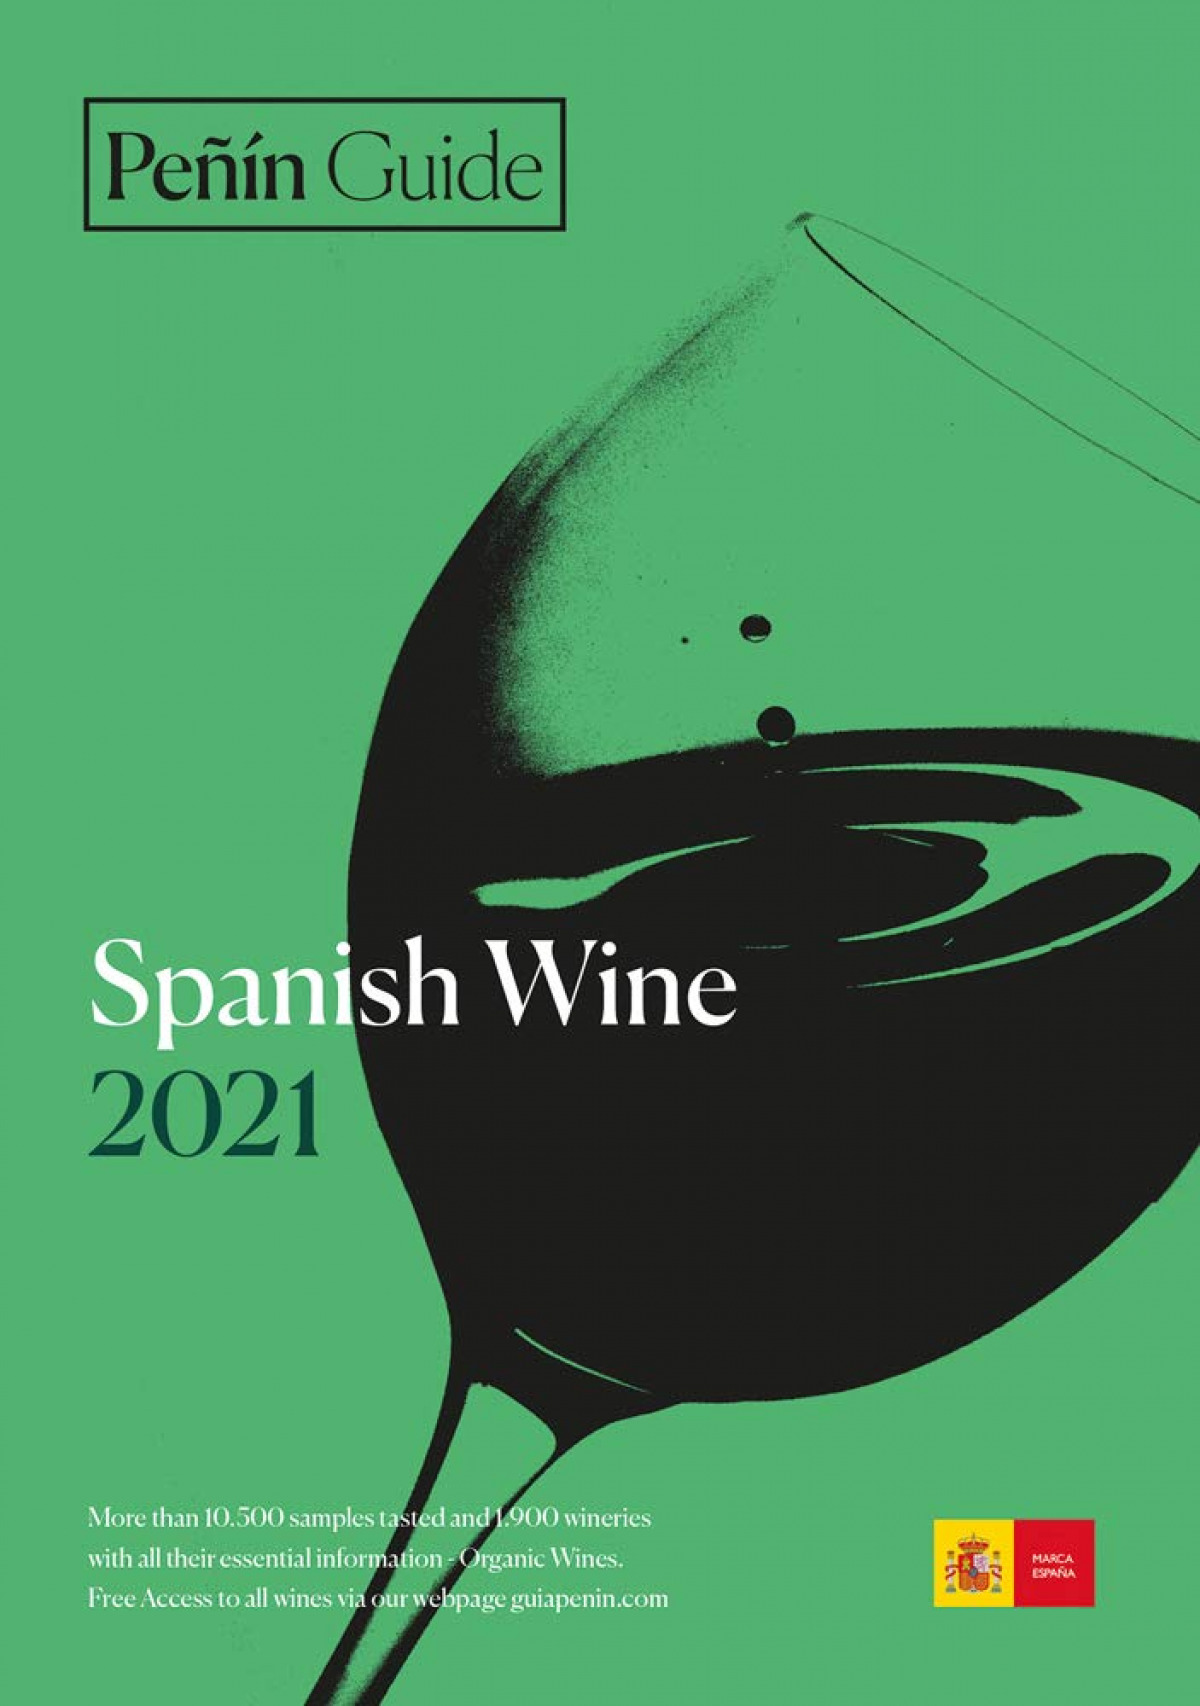 PEñIN GUIDE SPANISH WINE 2021 9788412240214